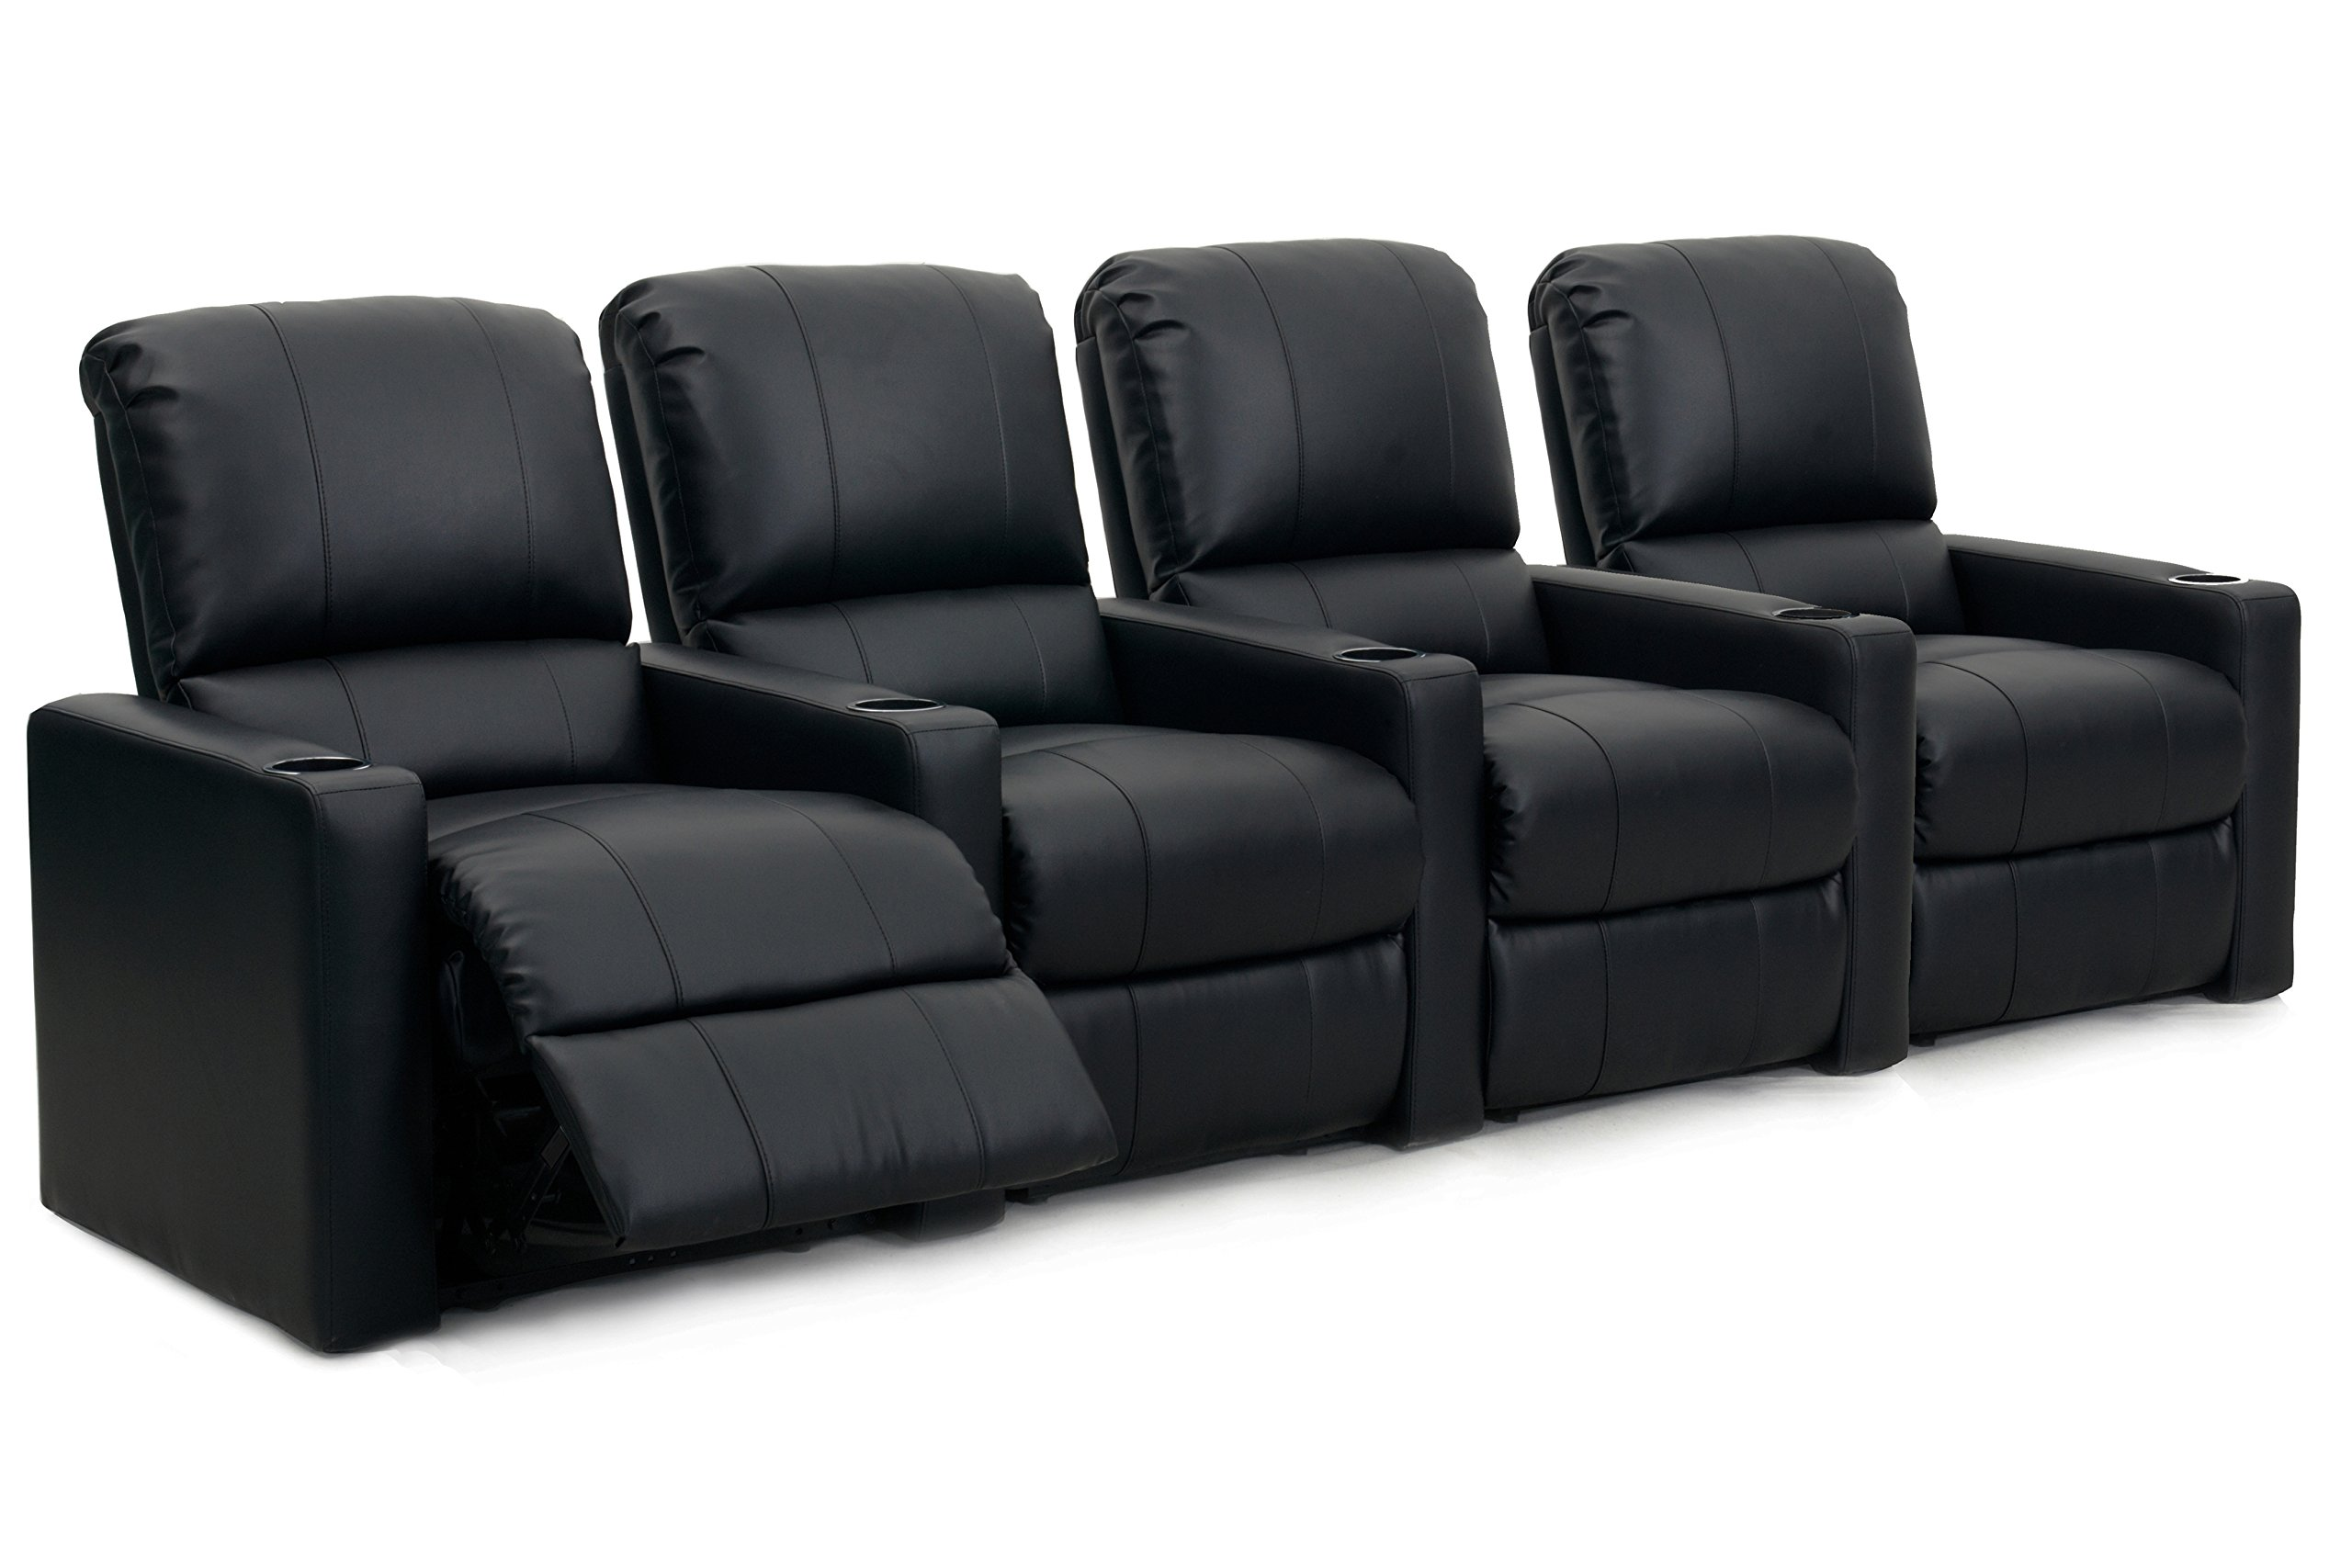 Octane Seating Octane Charger XS300 Leather Home Theater Recliner Set (Row of 4), Black by Octane Seating